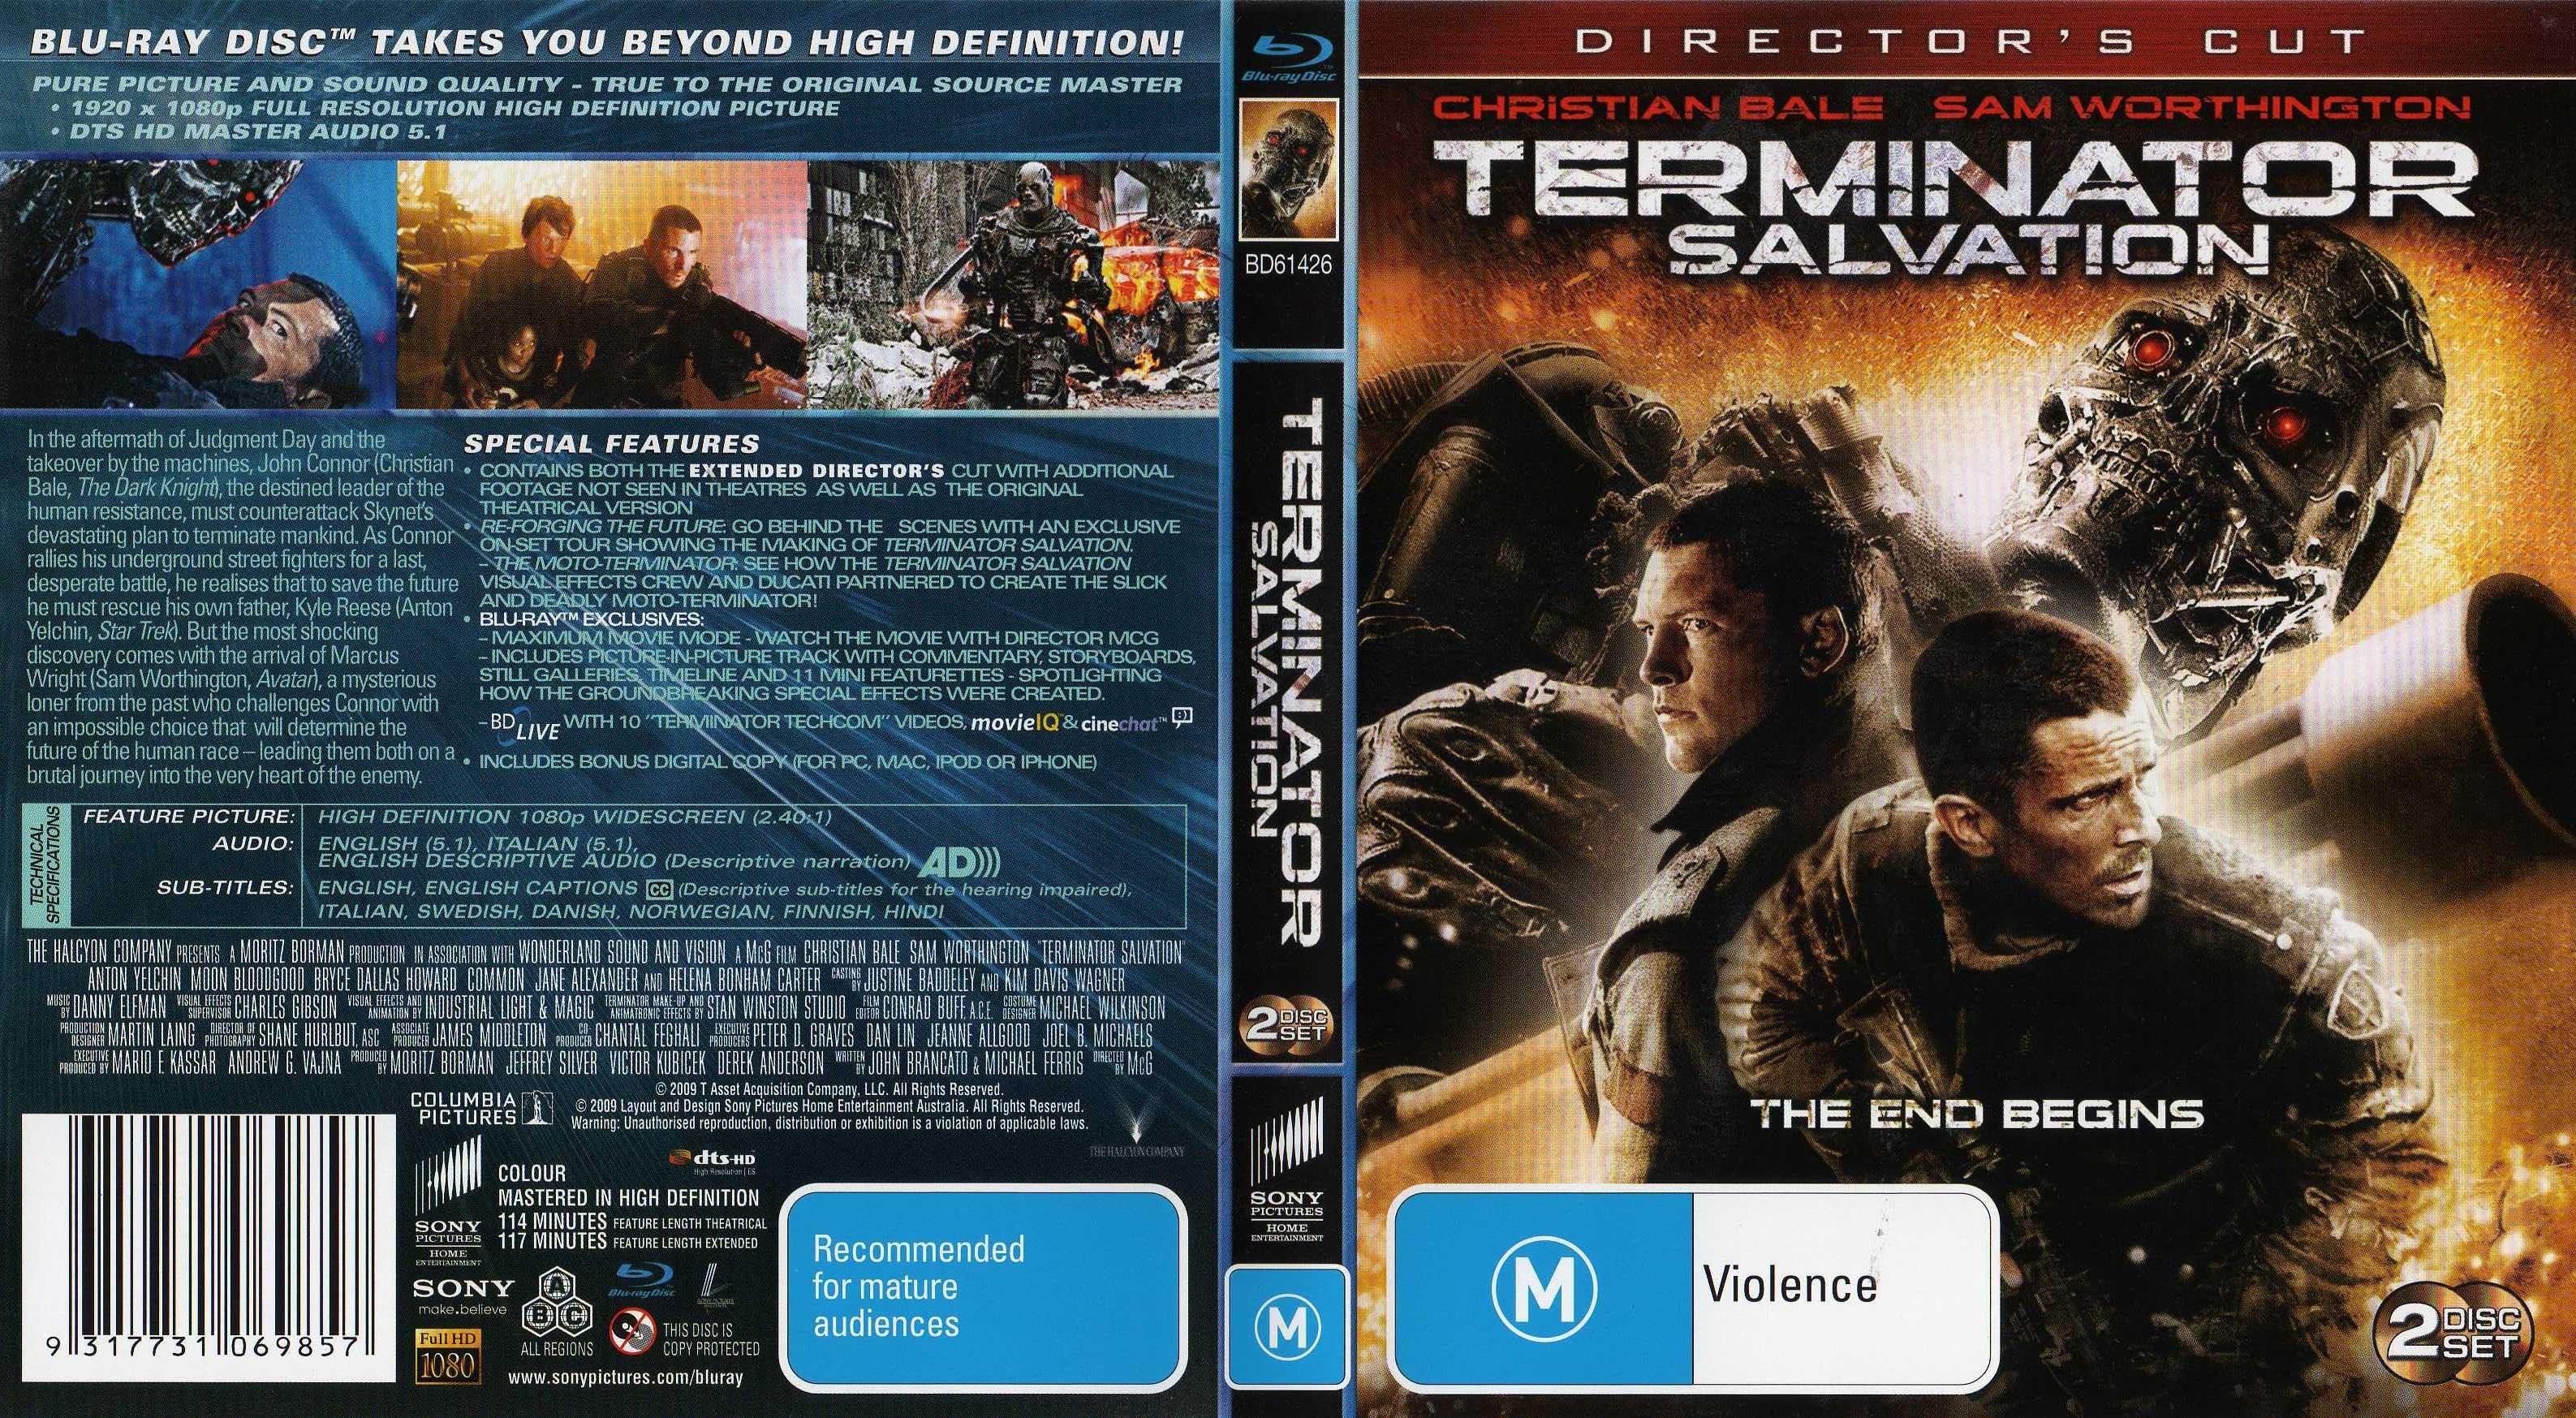 definition of violent movies